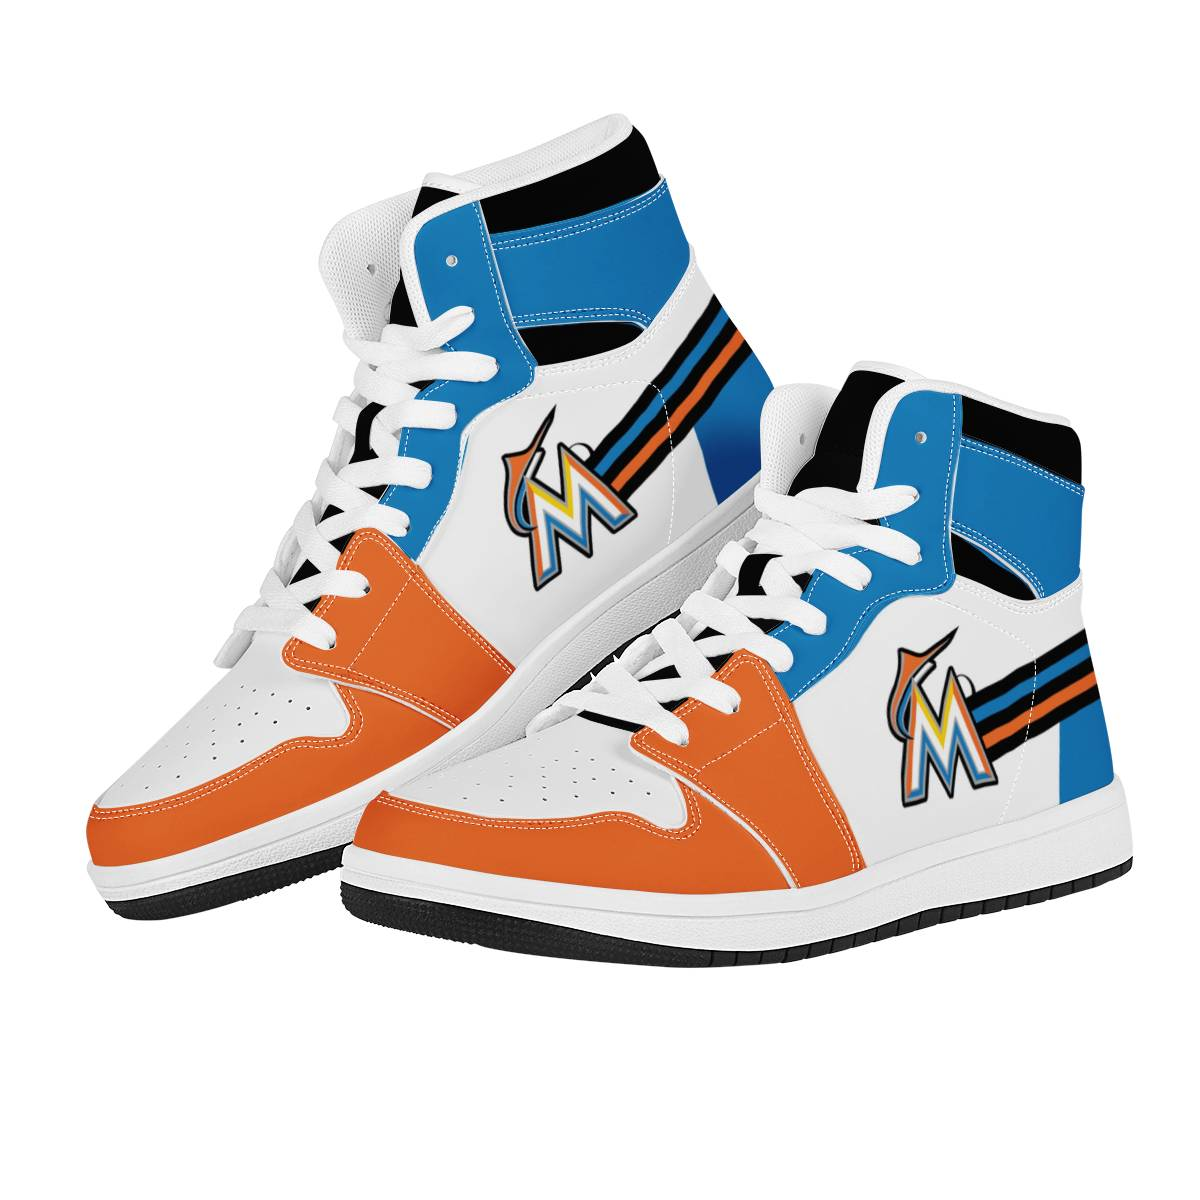 Women's Miami Marlins High Top Leather AJ1 Sneakers 001